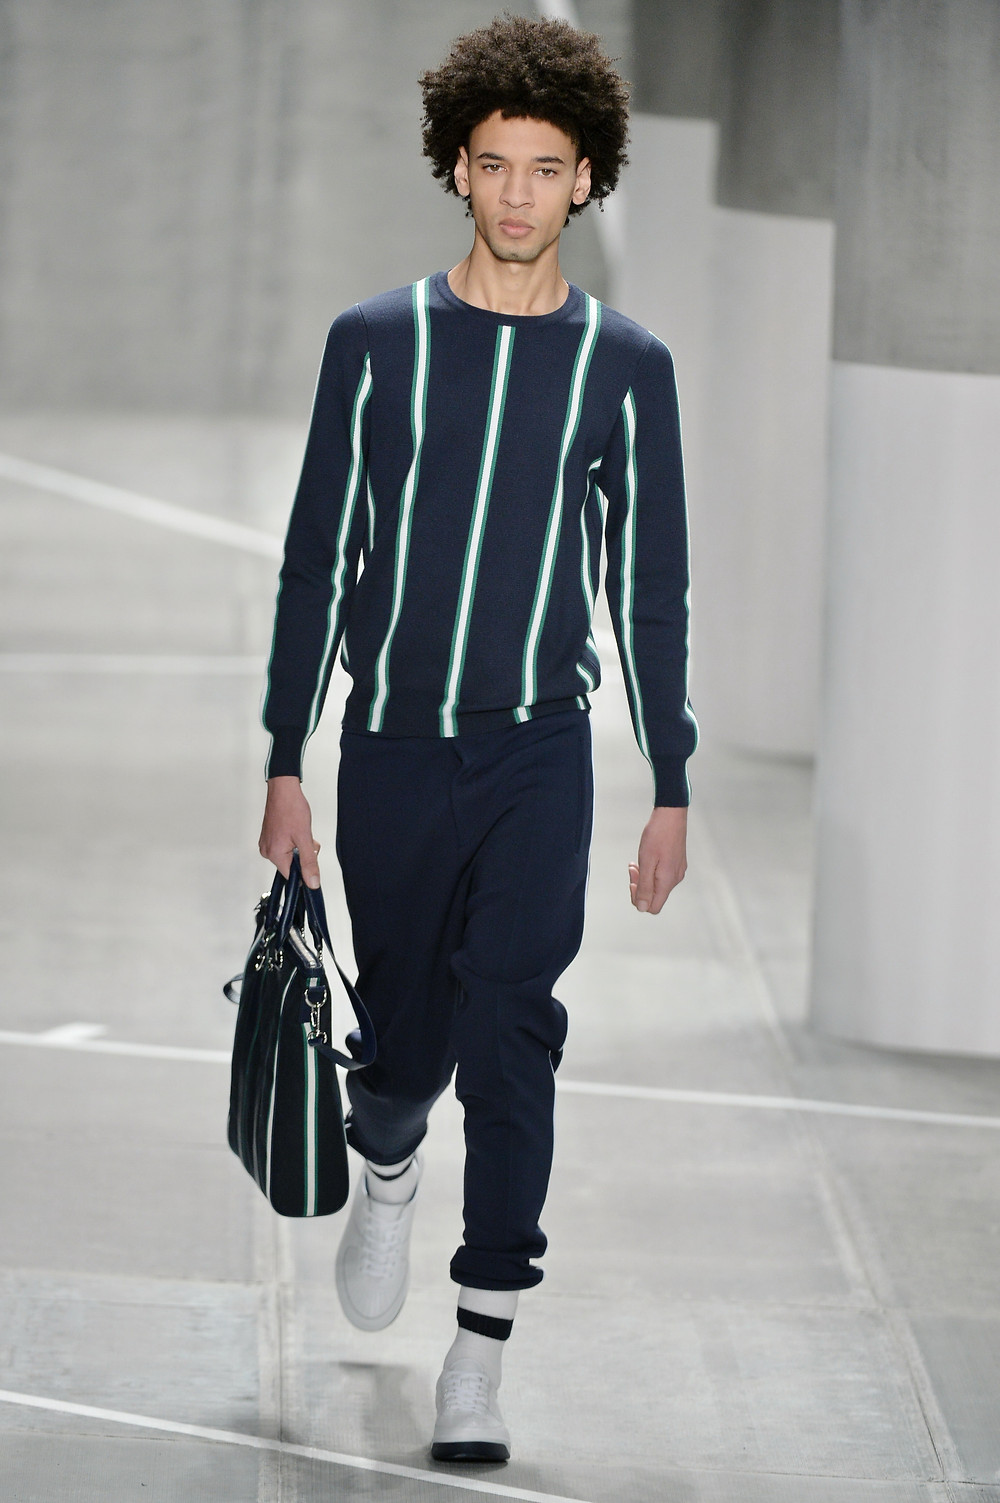 28_Lacoste_original_lct_aw15_055.jpg